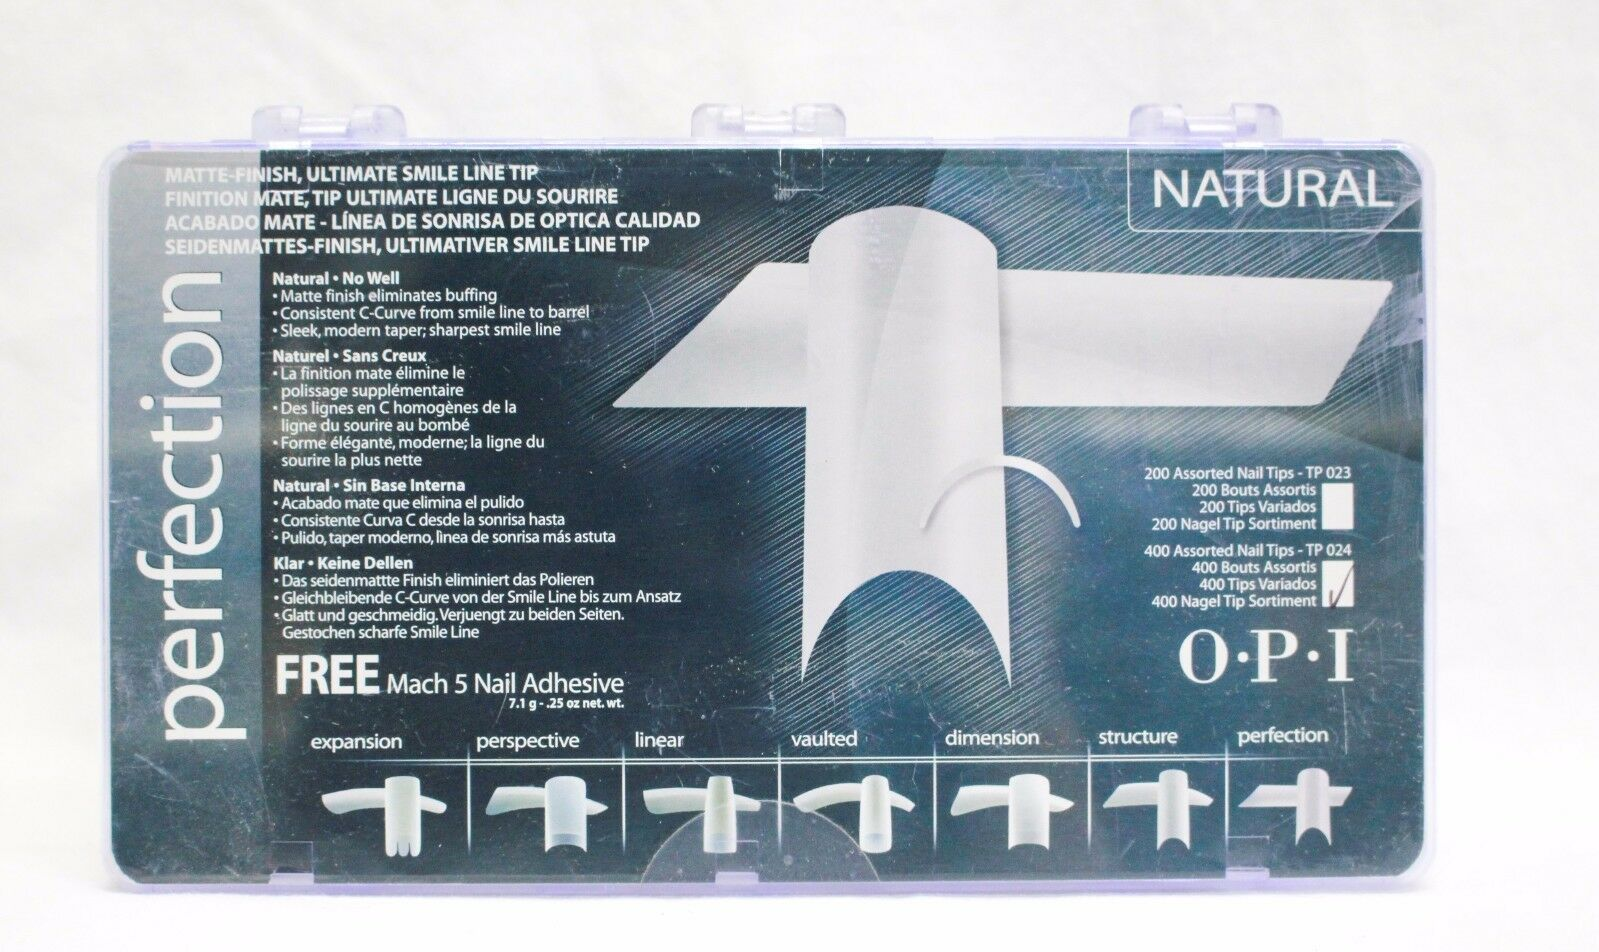 OPI Nail Tips Perfection Natural 400ct/box | eBay